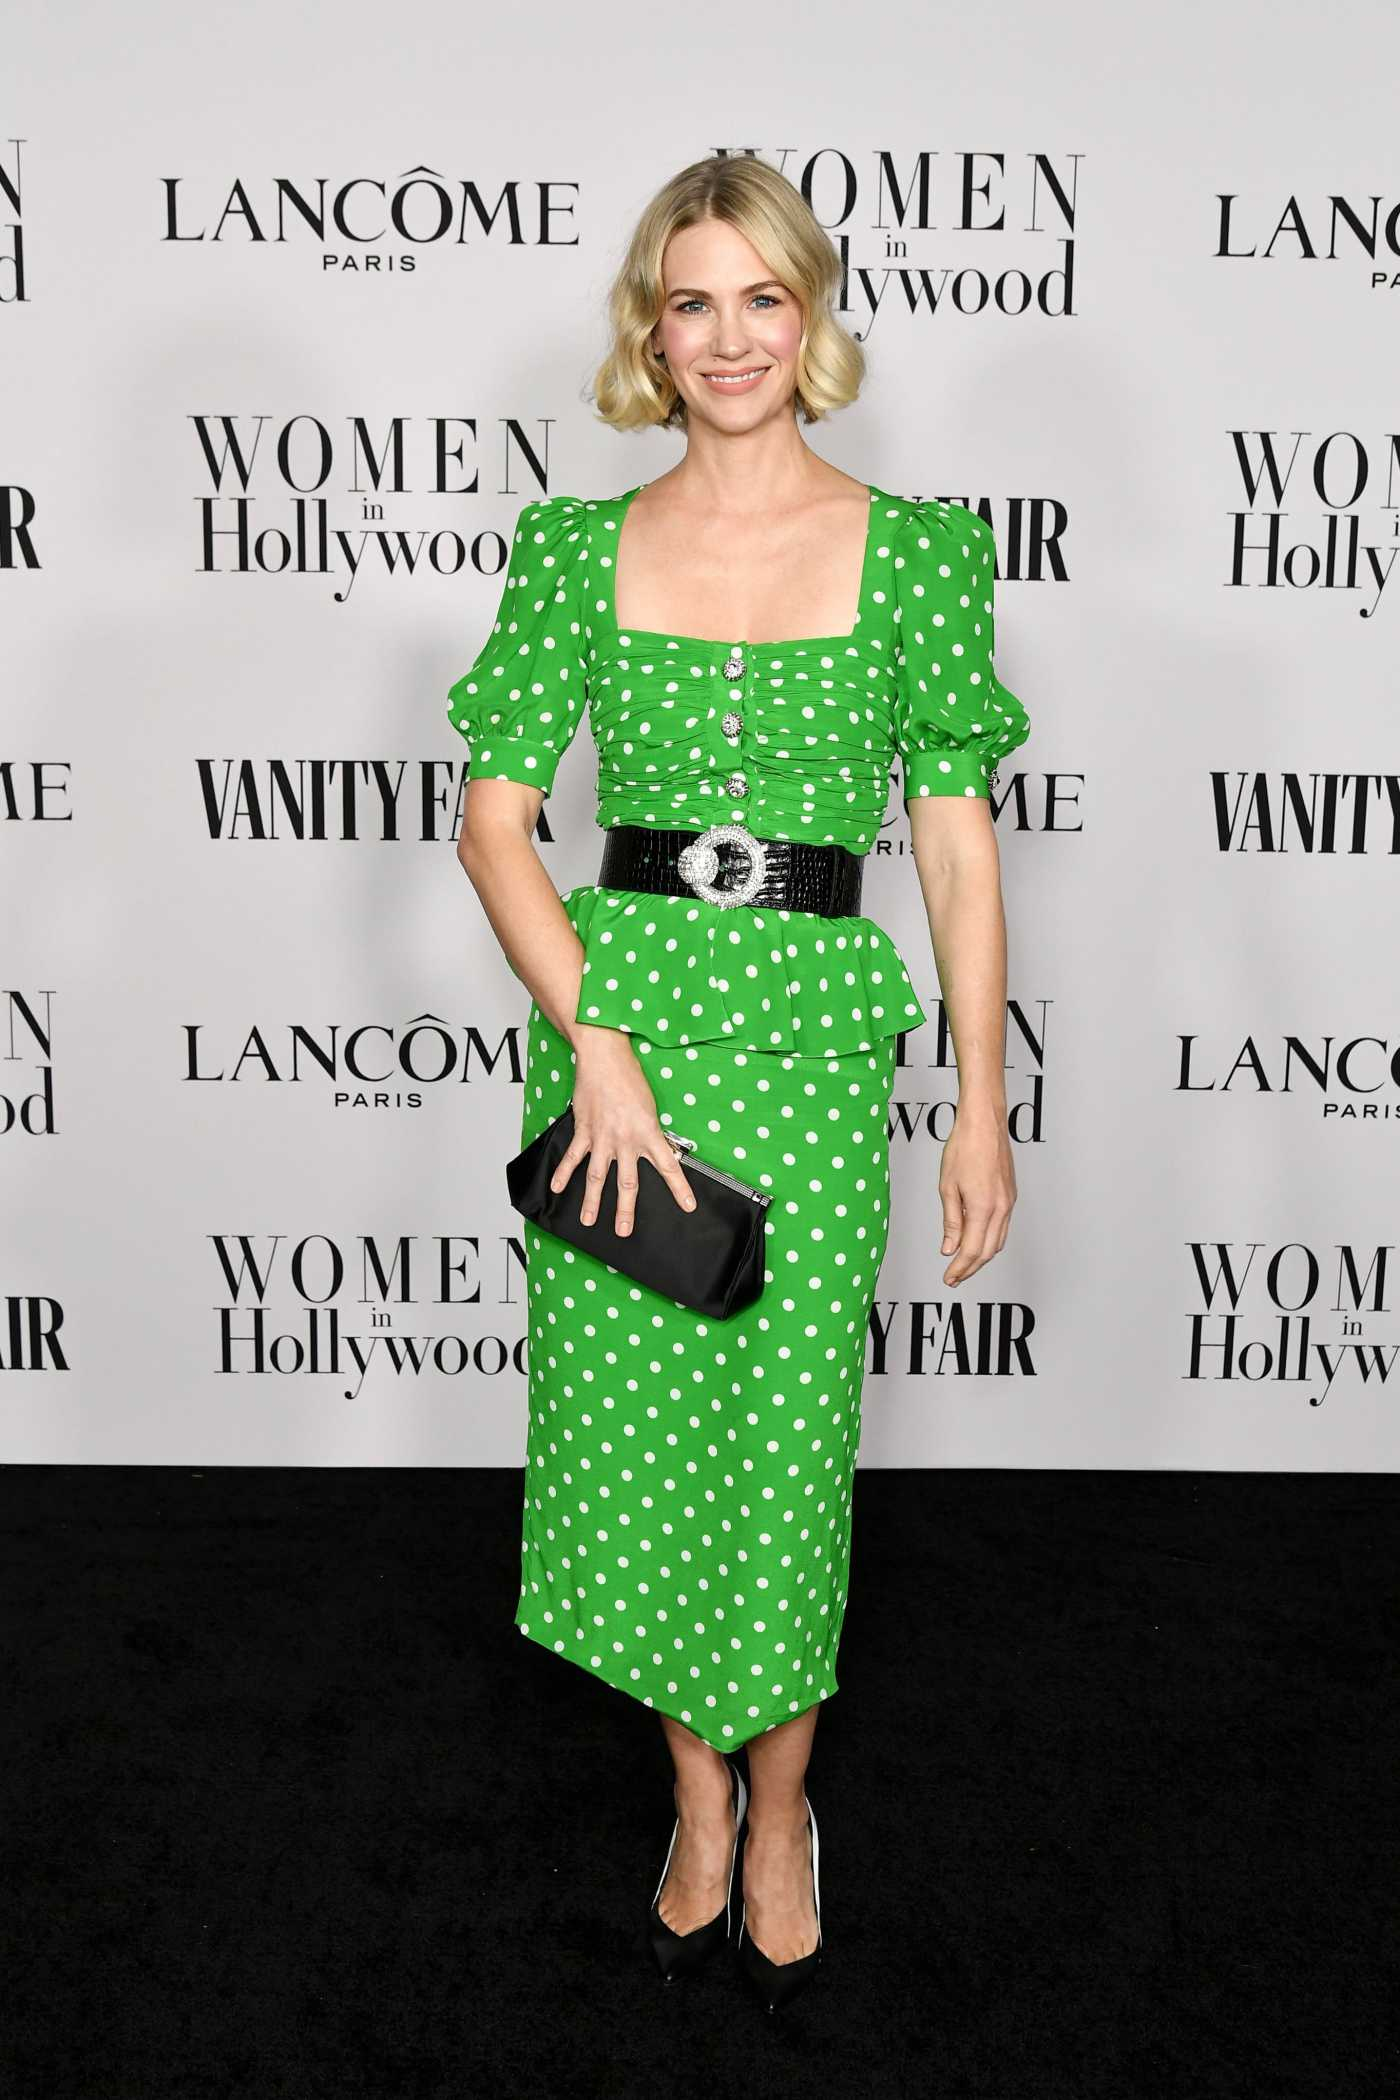 January Jones Attends the Vanity Fair and Lancome Women in Hollywood Celebration at SoHo House in West Hollywood 02/06/2020